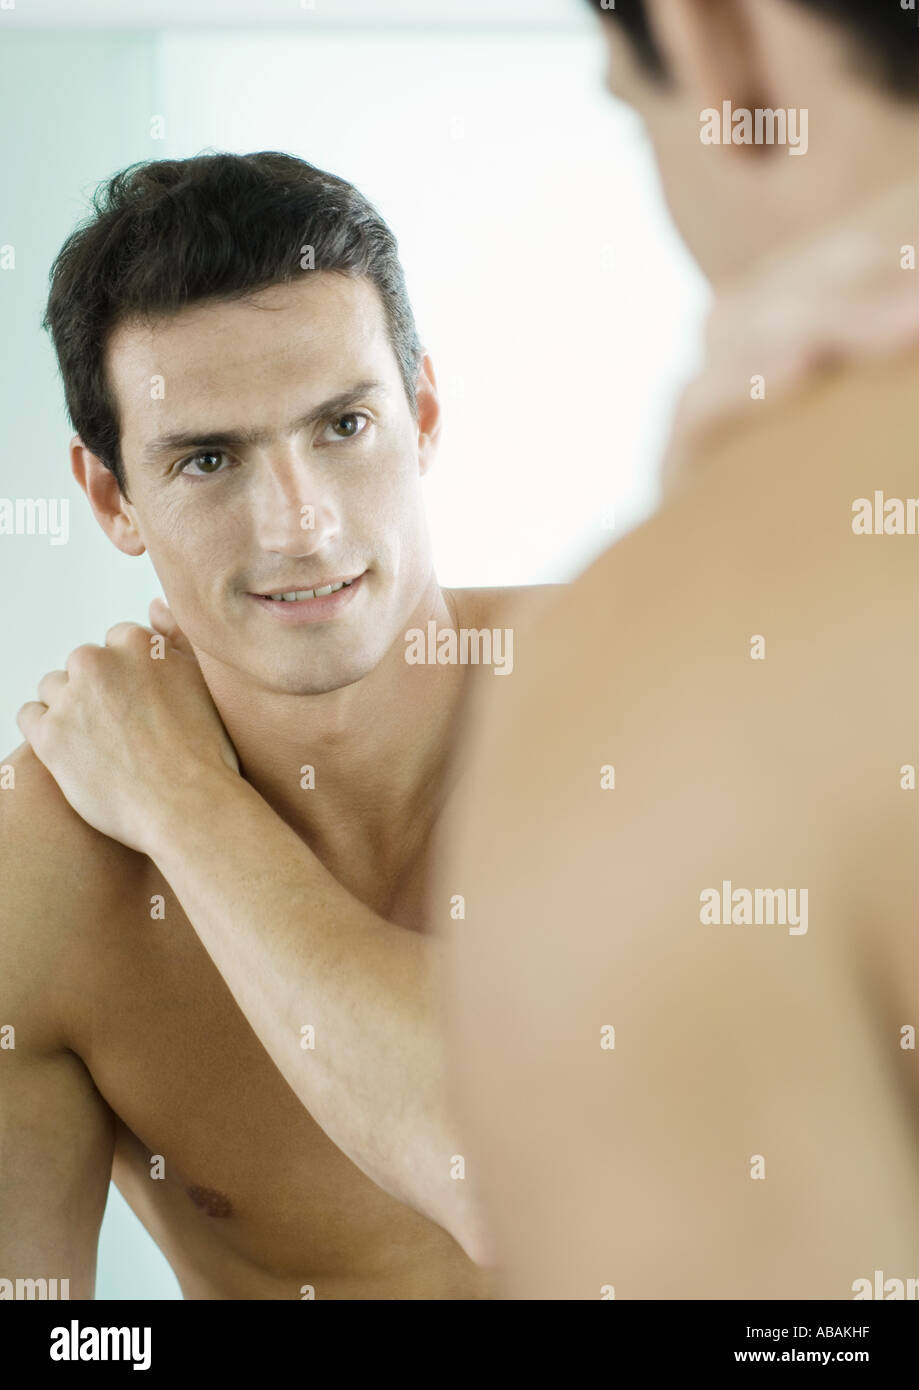 Barechested man smiling at self in mirror - Stock Image